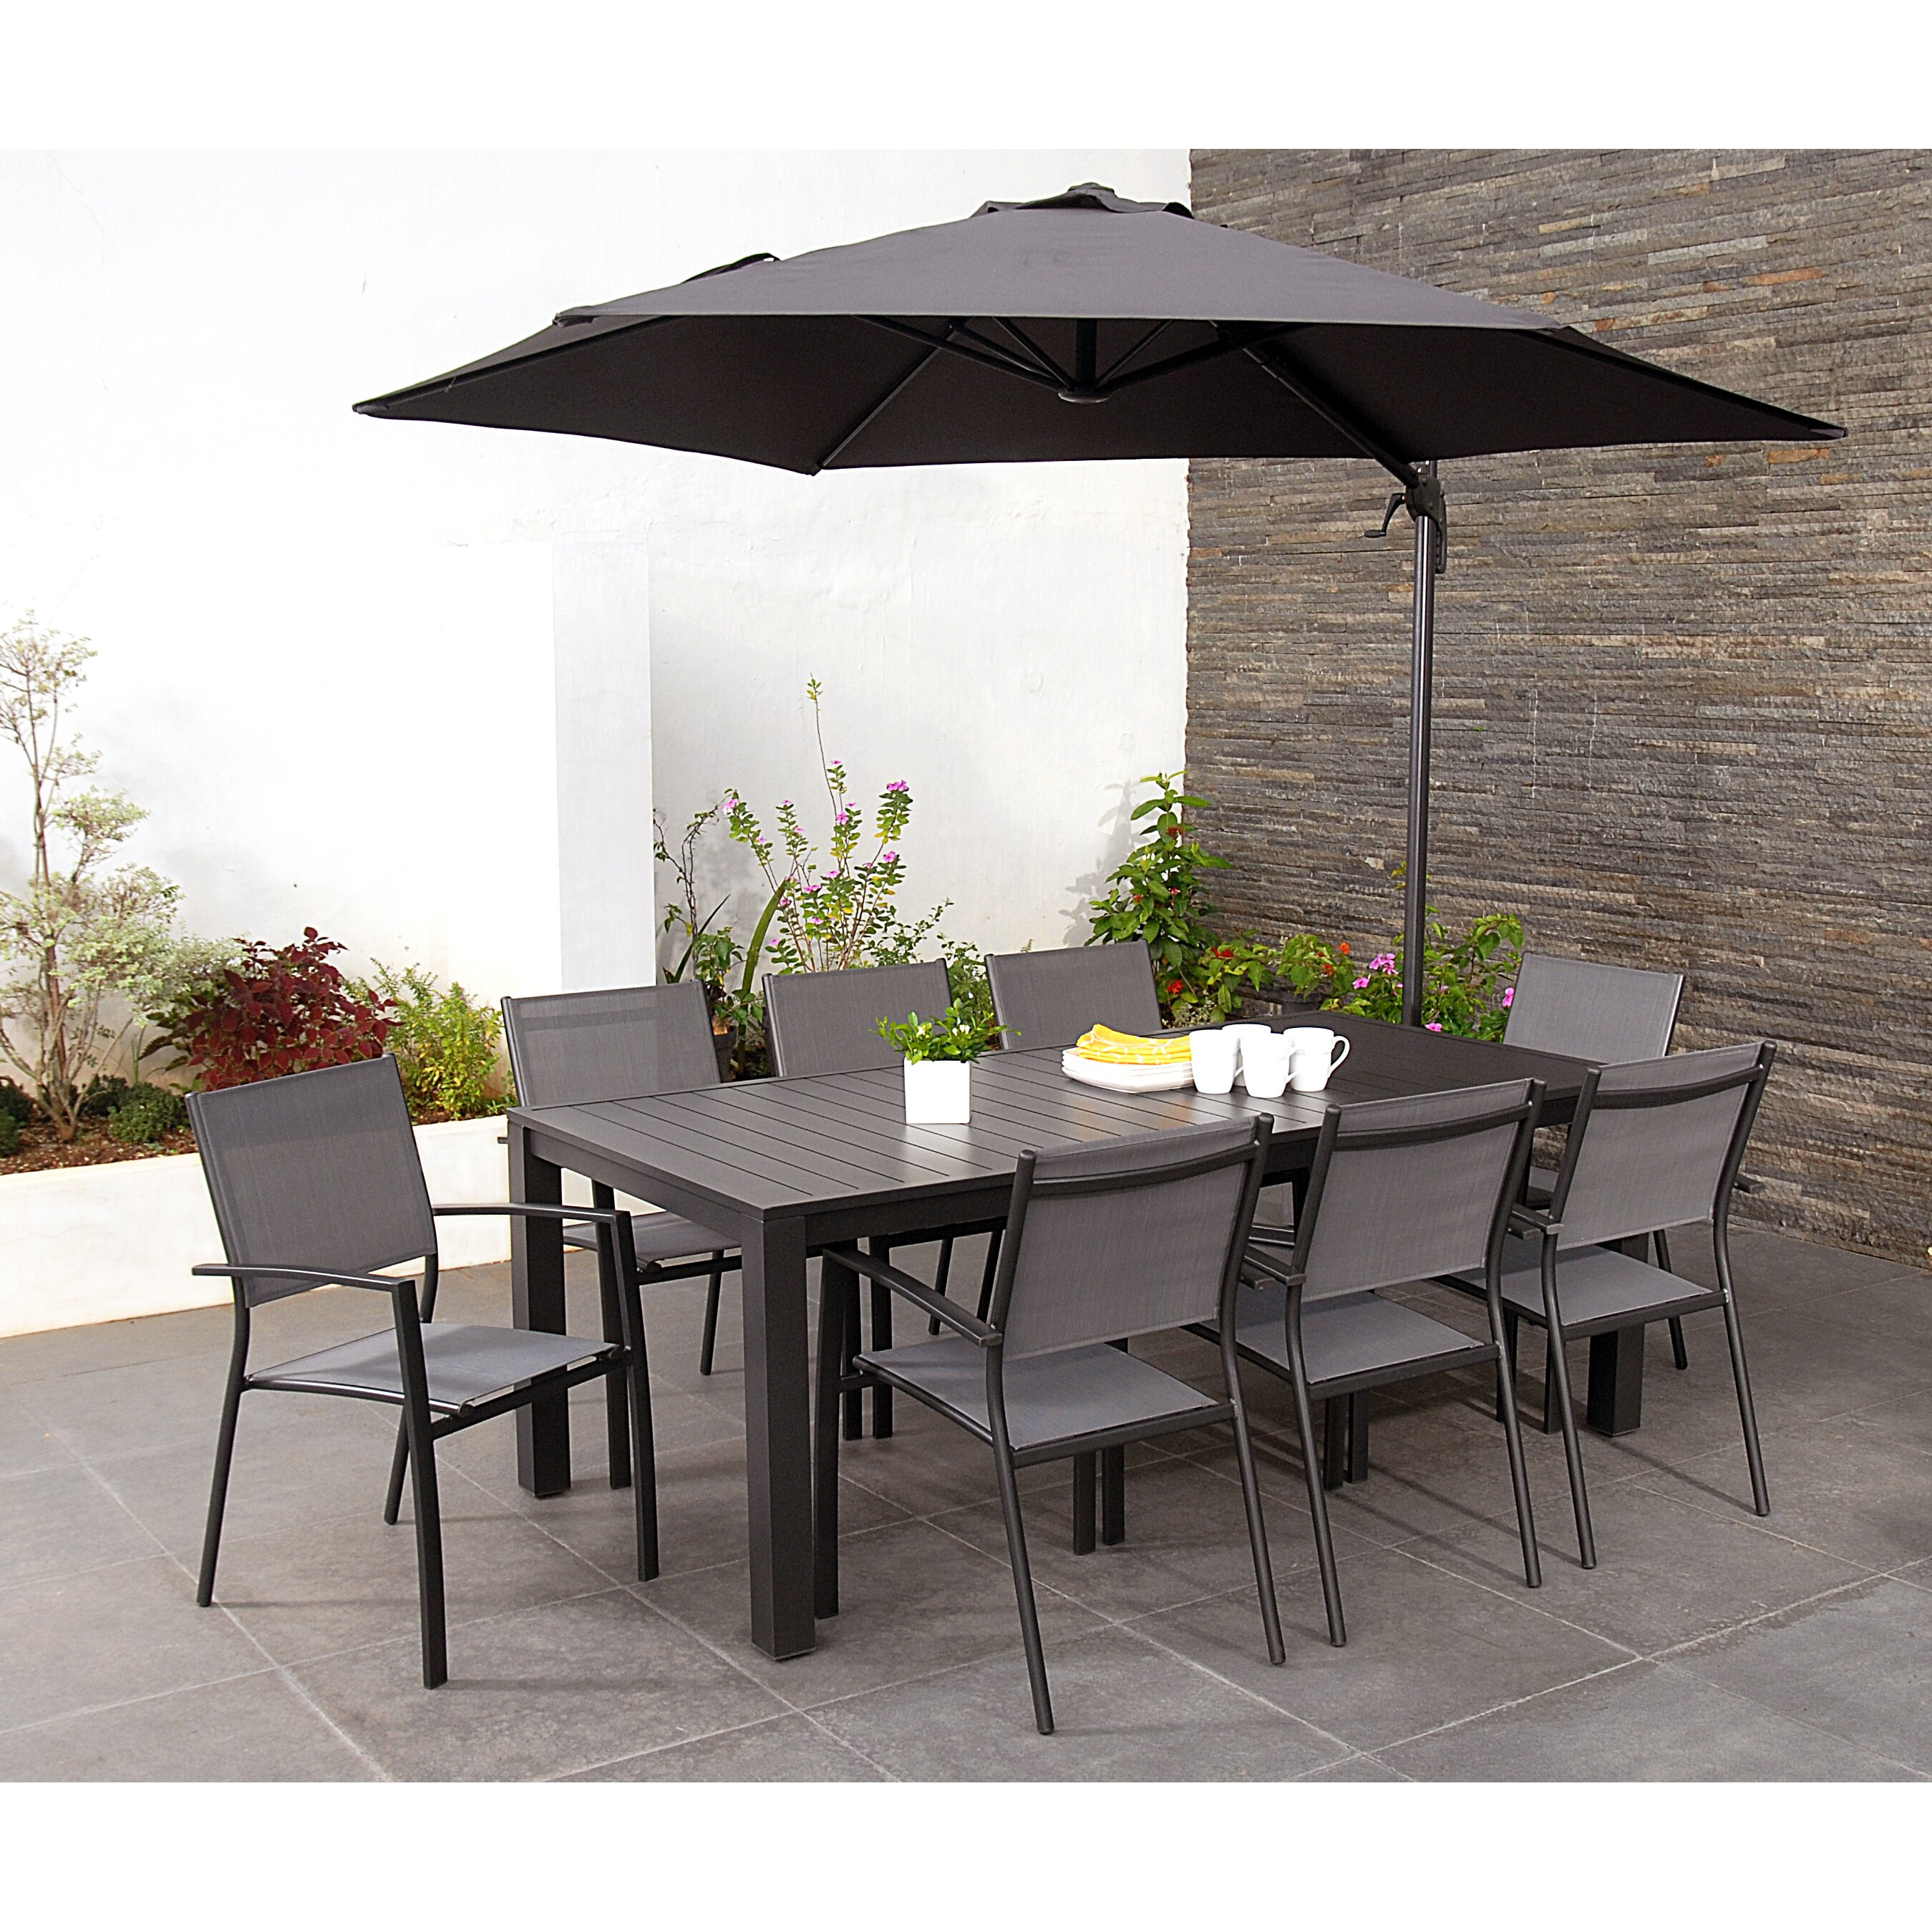 Homestead Living Elms 8 Seater Dining Set With Parasol